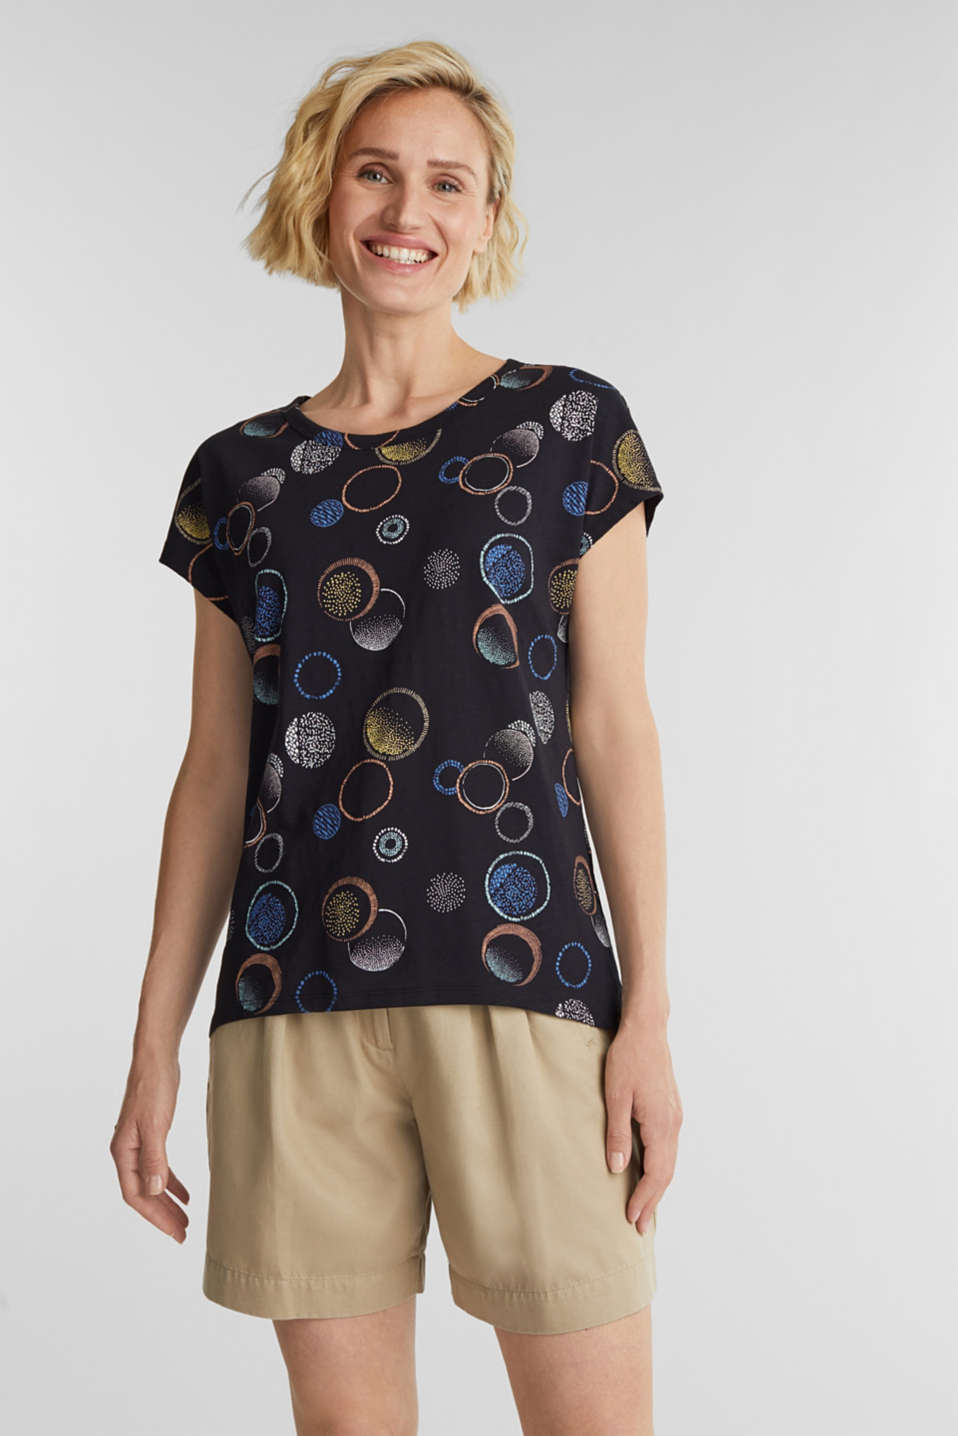 Esprit - Printed T-shirt in 100% organic cotton